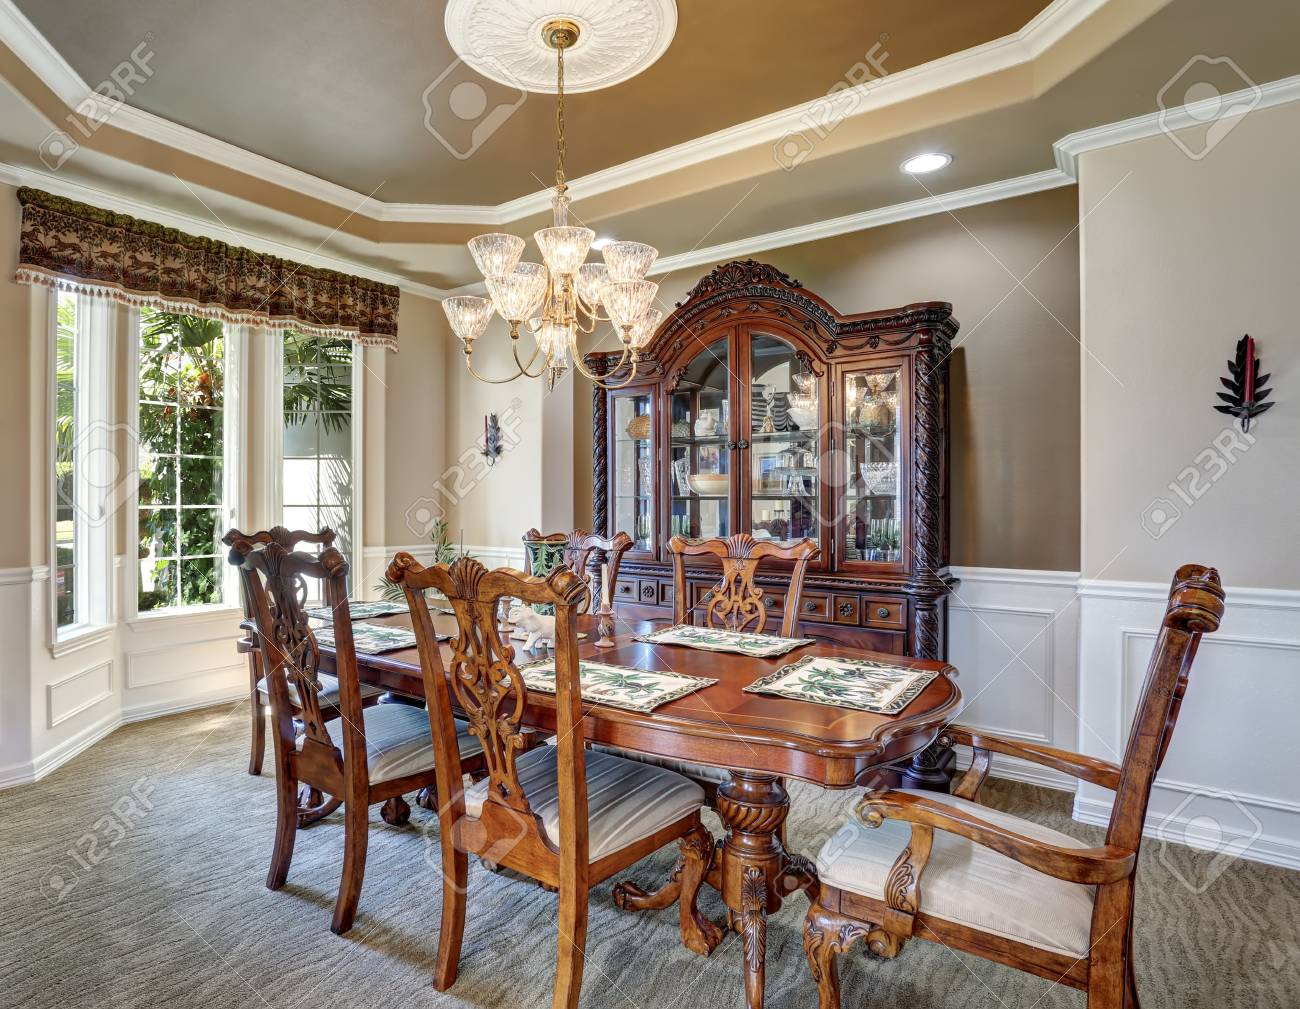 Gorgeous Dining Room Interior Design With Vintage Furniture Stock Photo Picture And Royalty Free Image Image 63737515